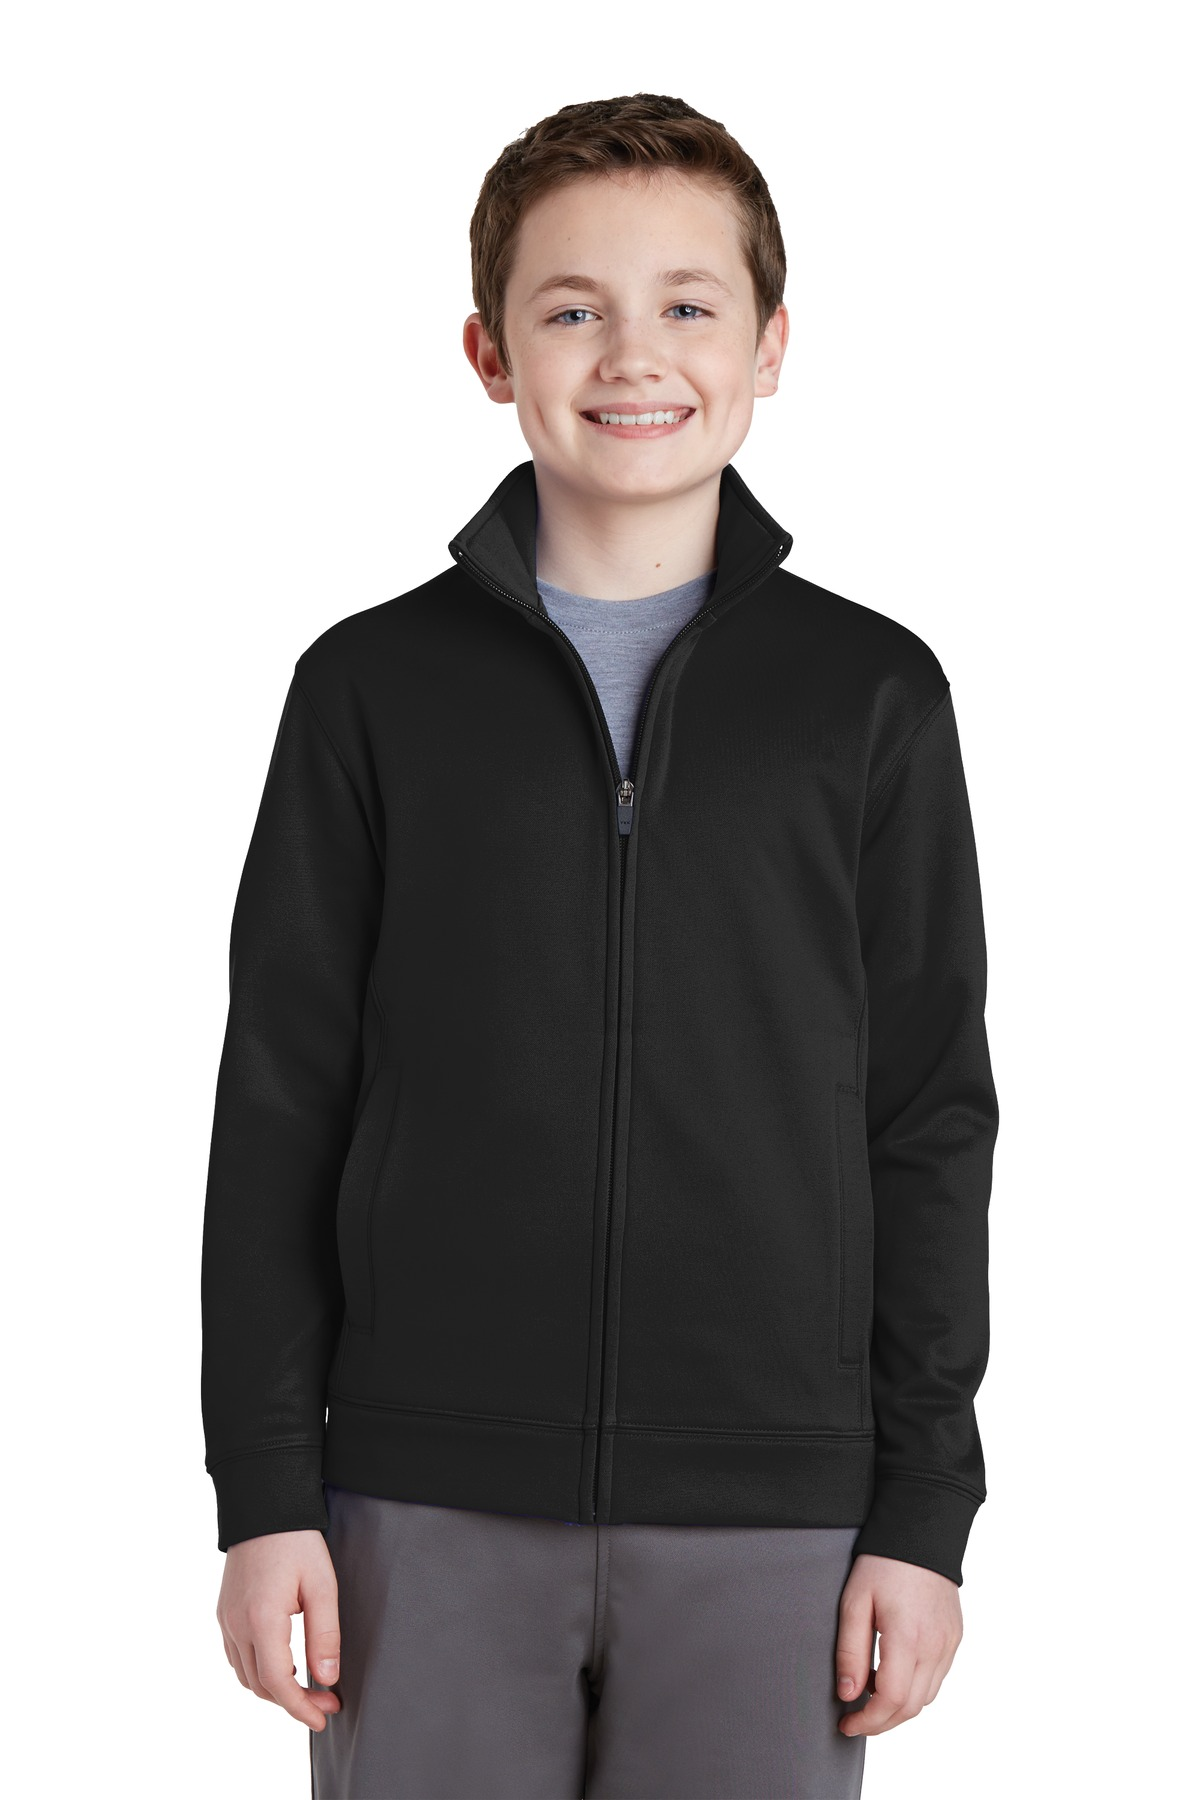 Sport-Tek ®  Youth Sport-Wick ®  Fleece Full-Zip Jacket.  YST241 - Black